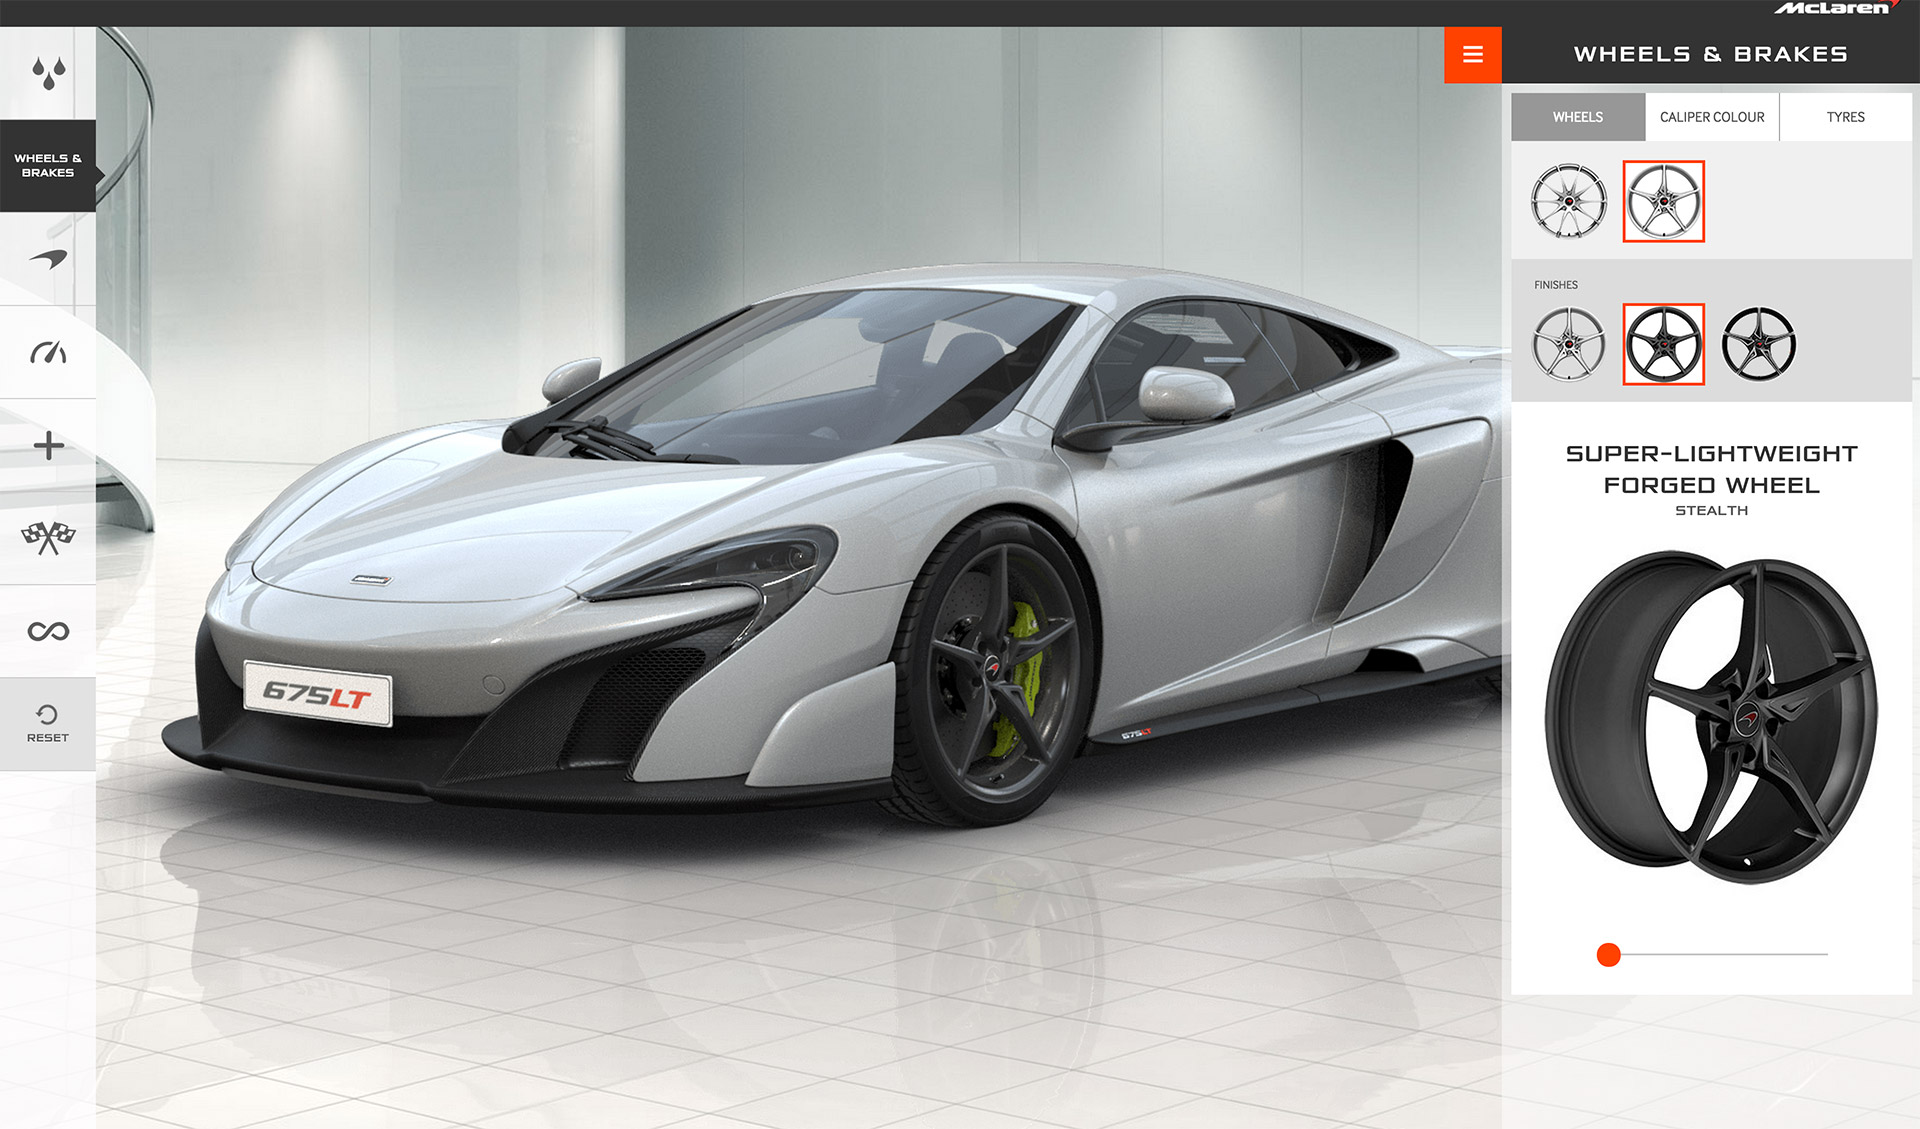 If You Can't Buy the McLaren 675LT, At Least Build One